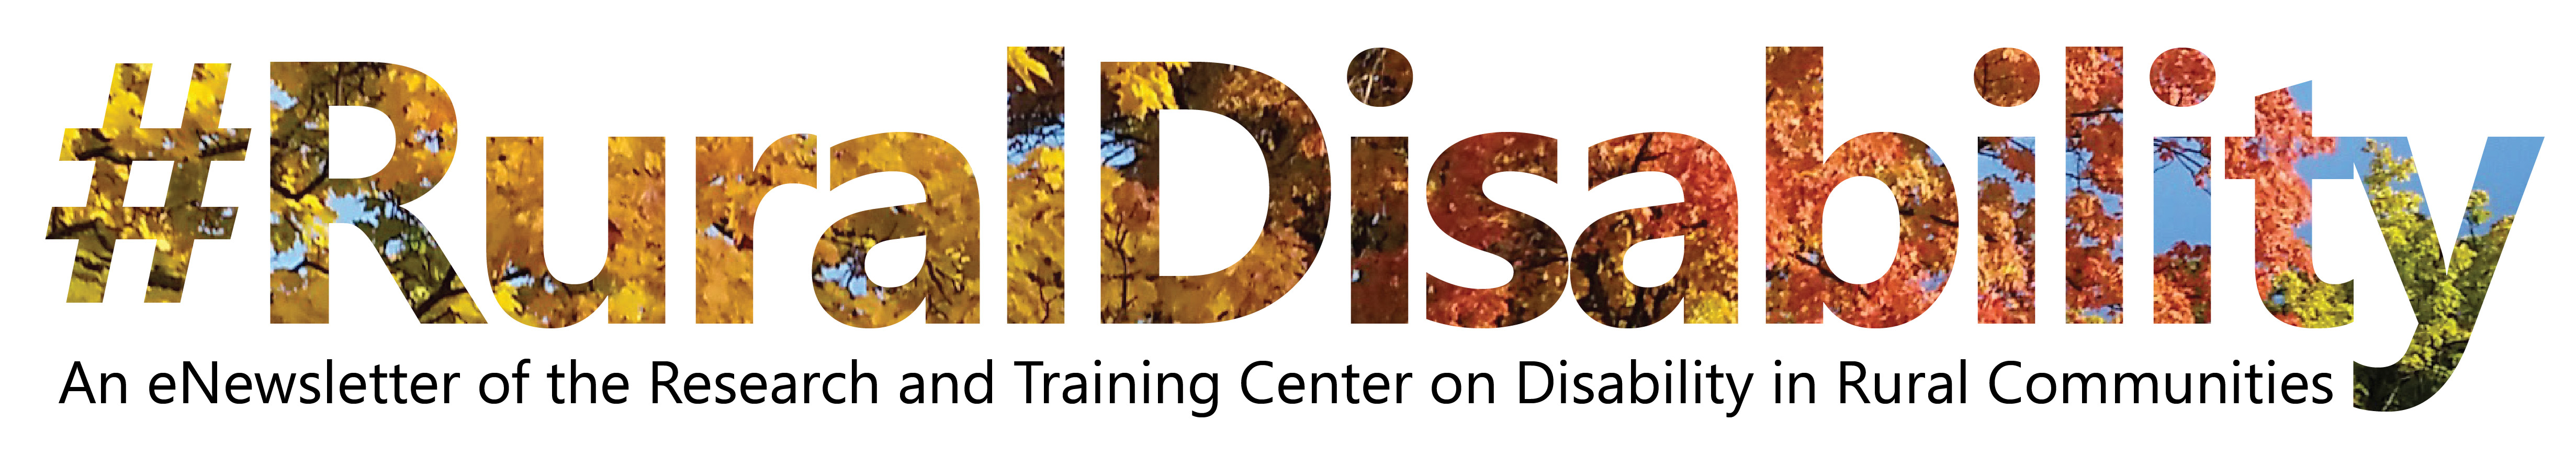 #RuralDisability, an enewsletter of the Research and Training Center on Disability in Rural Communities. The words are cut out of an image of fall foliage.